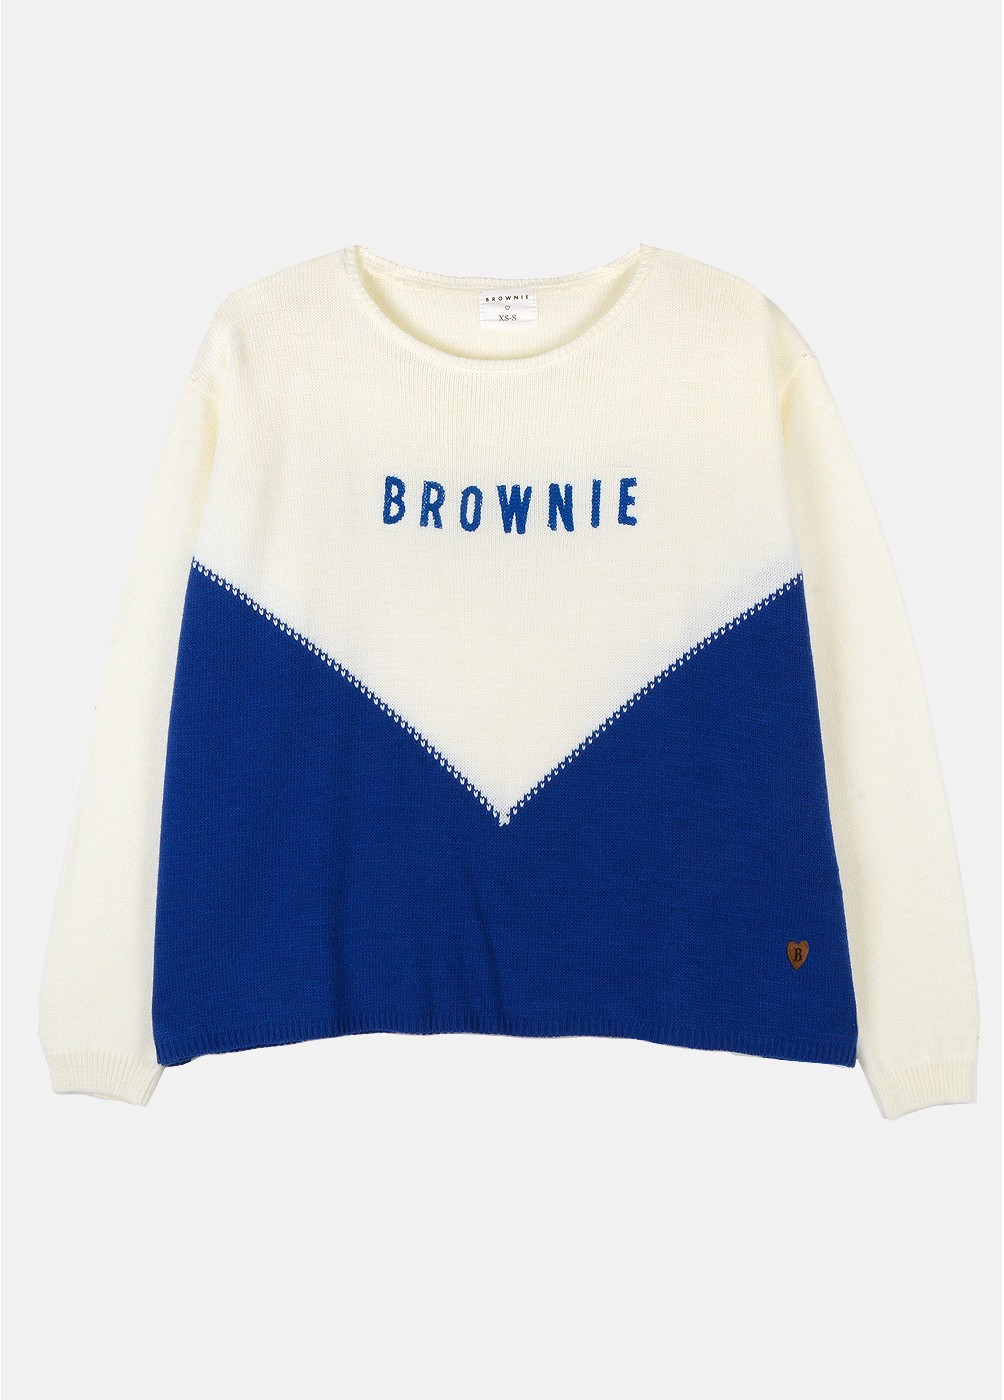 JERSEY C/ REDONDO BROWNIE BICOLOR MUST